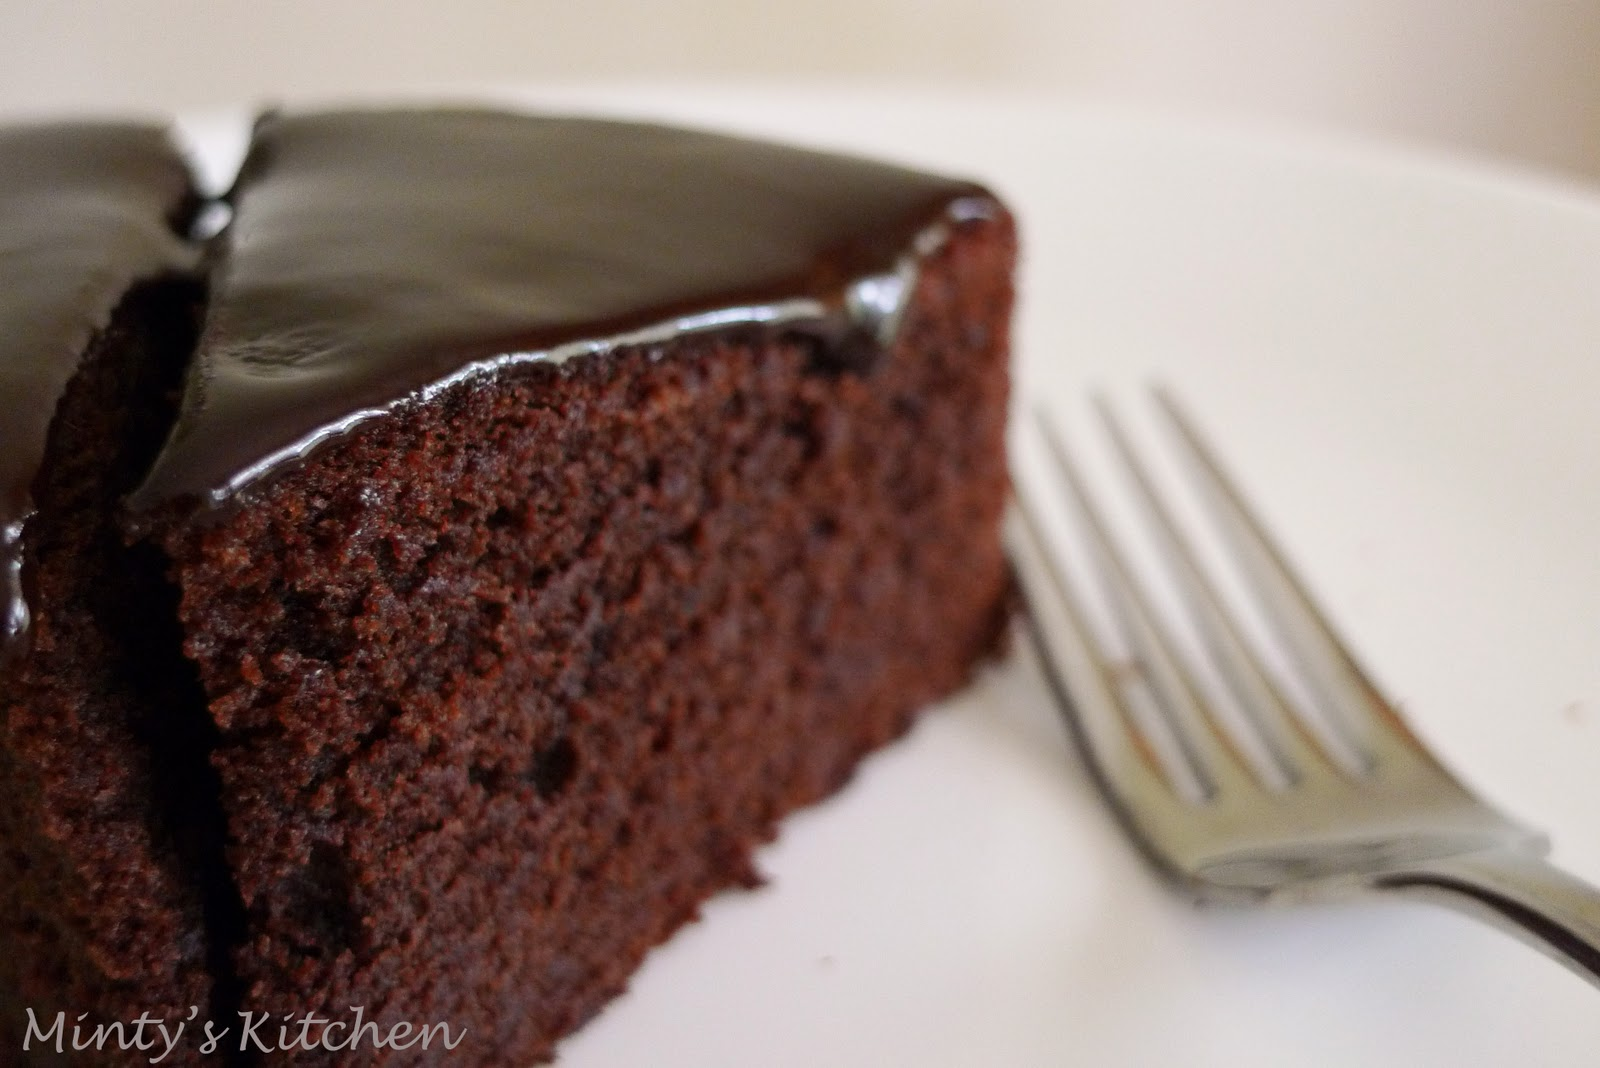 Minty s Kitchen: Rich Chocolate Cake